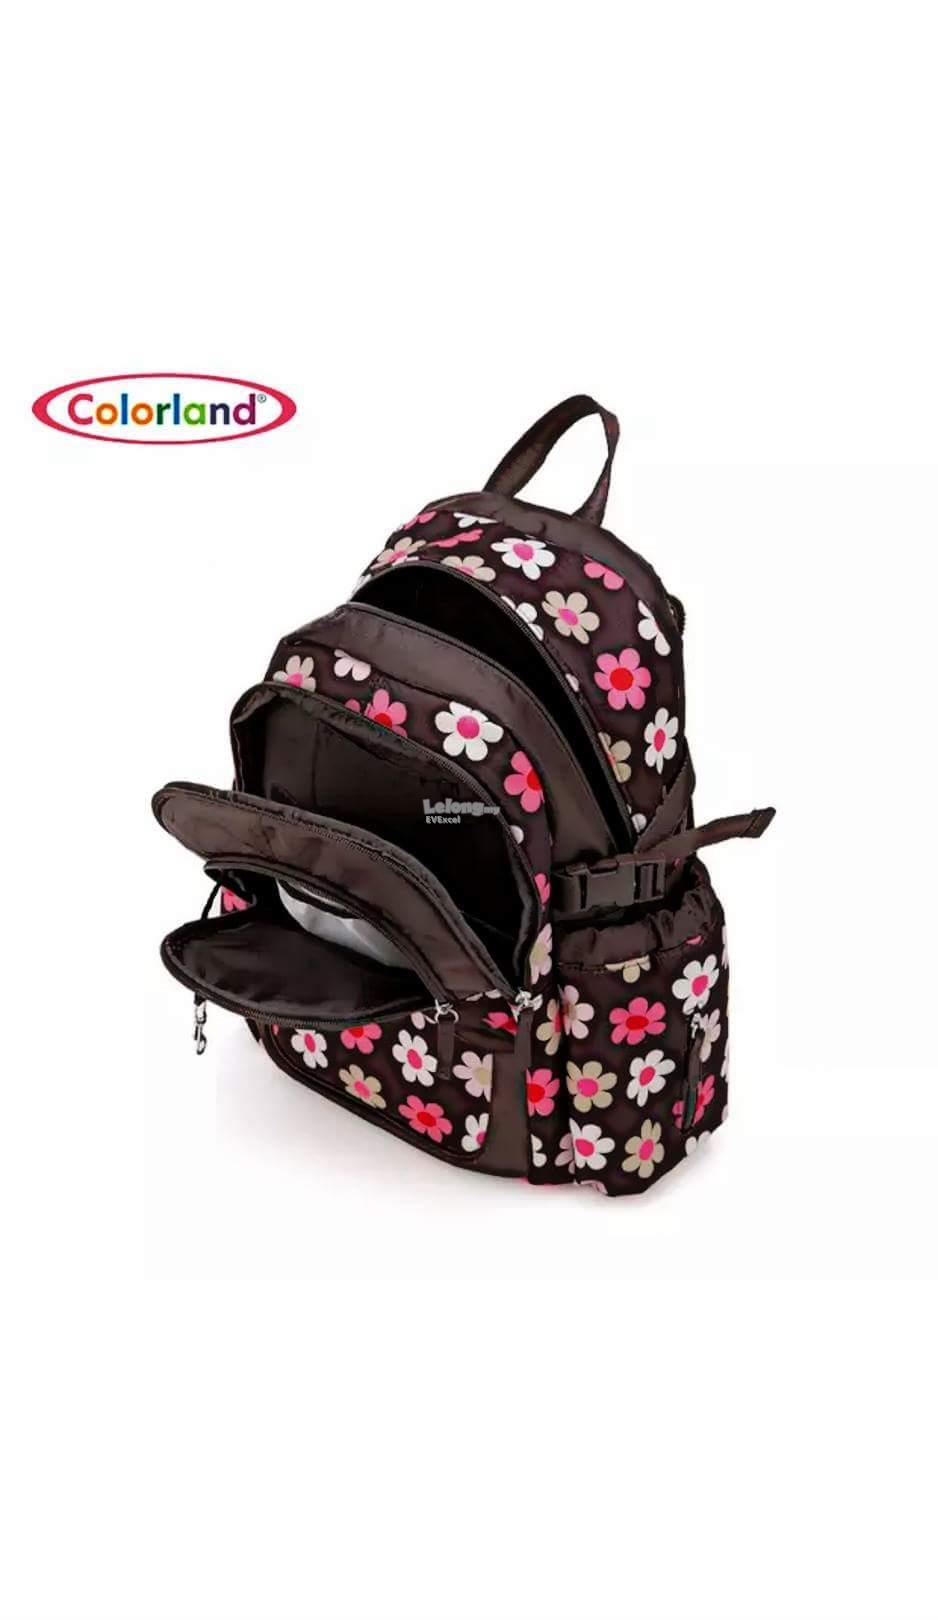 Colorland Abbey Ergo Baby Changing Backpack - Type B